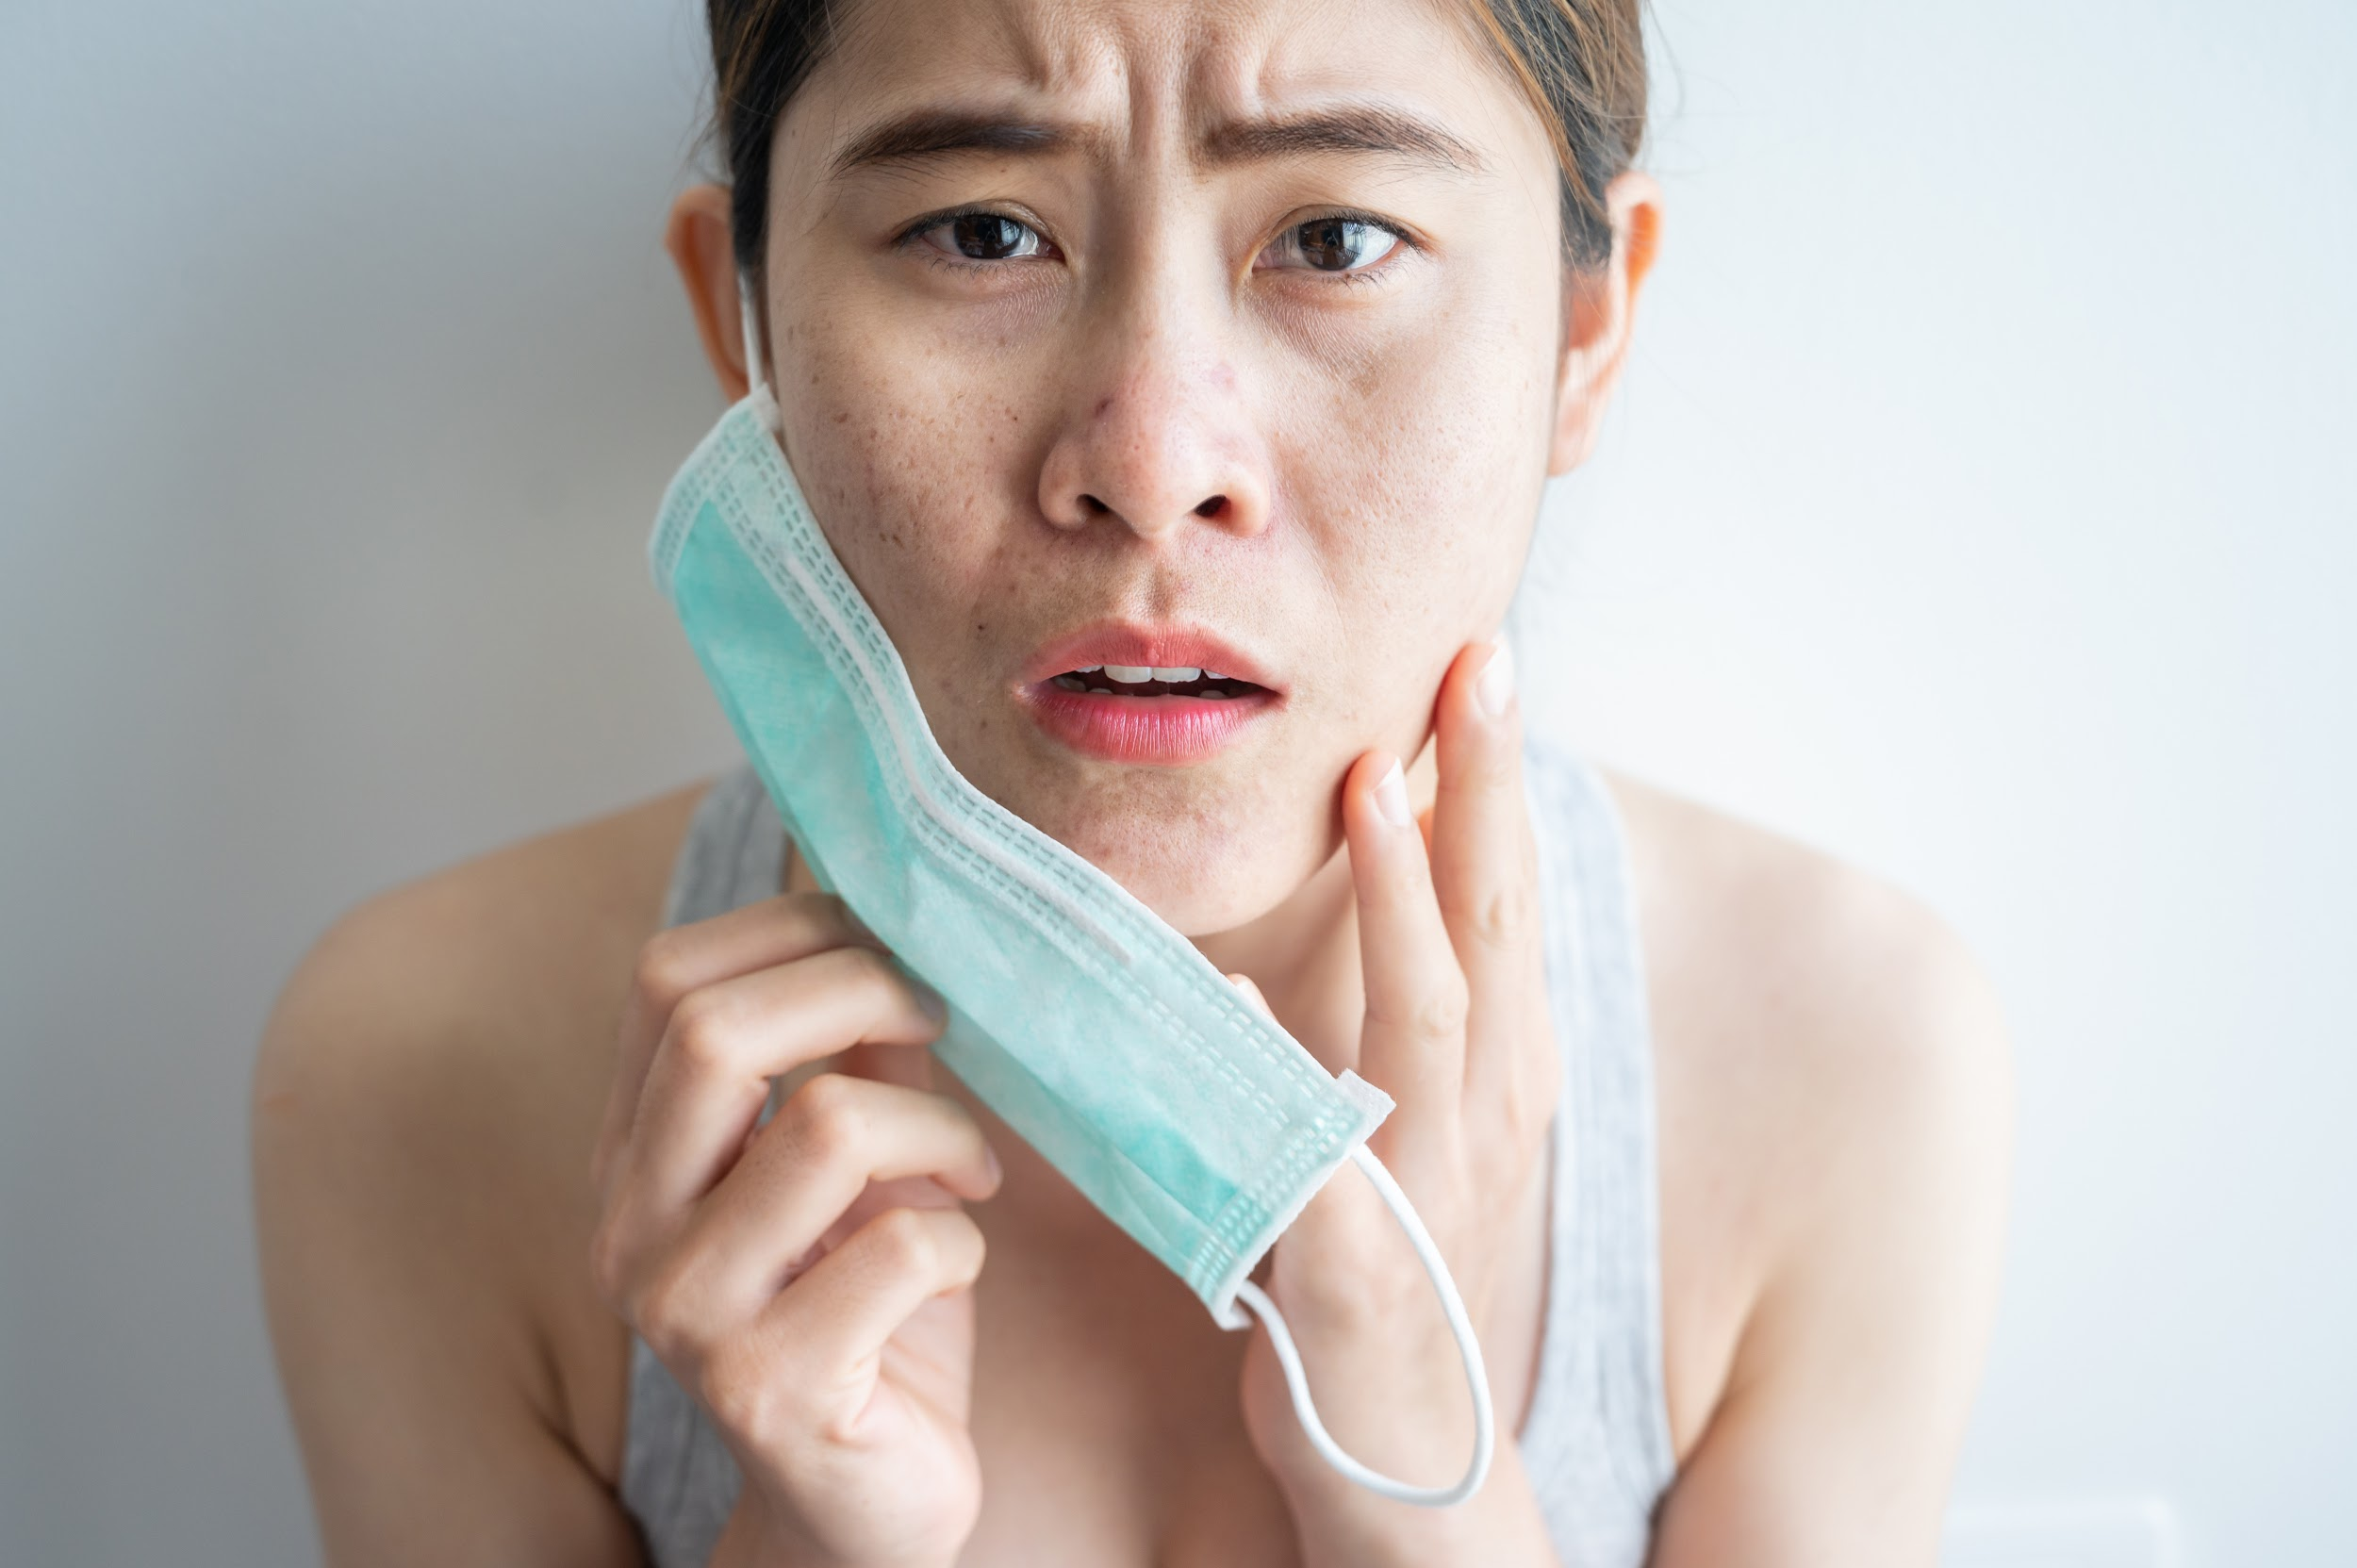 Asian woman worry about acne occur on her face after wearing mask